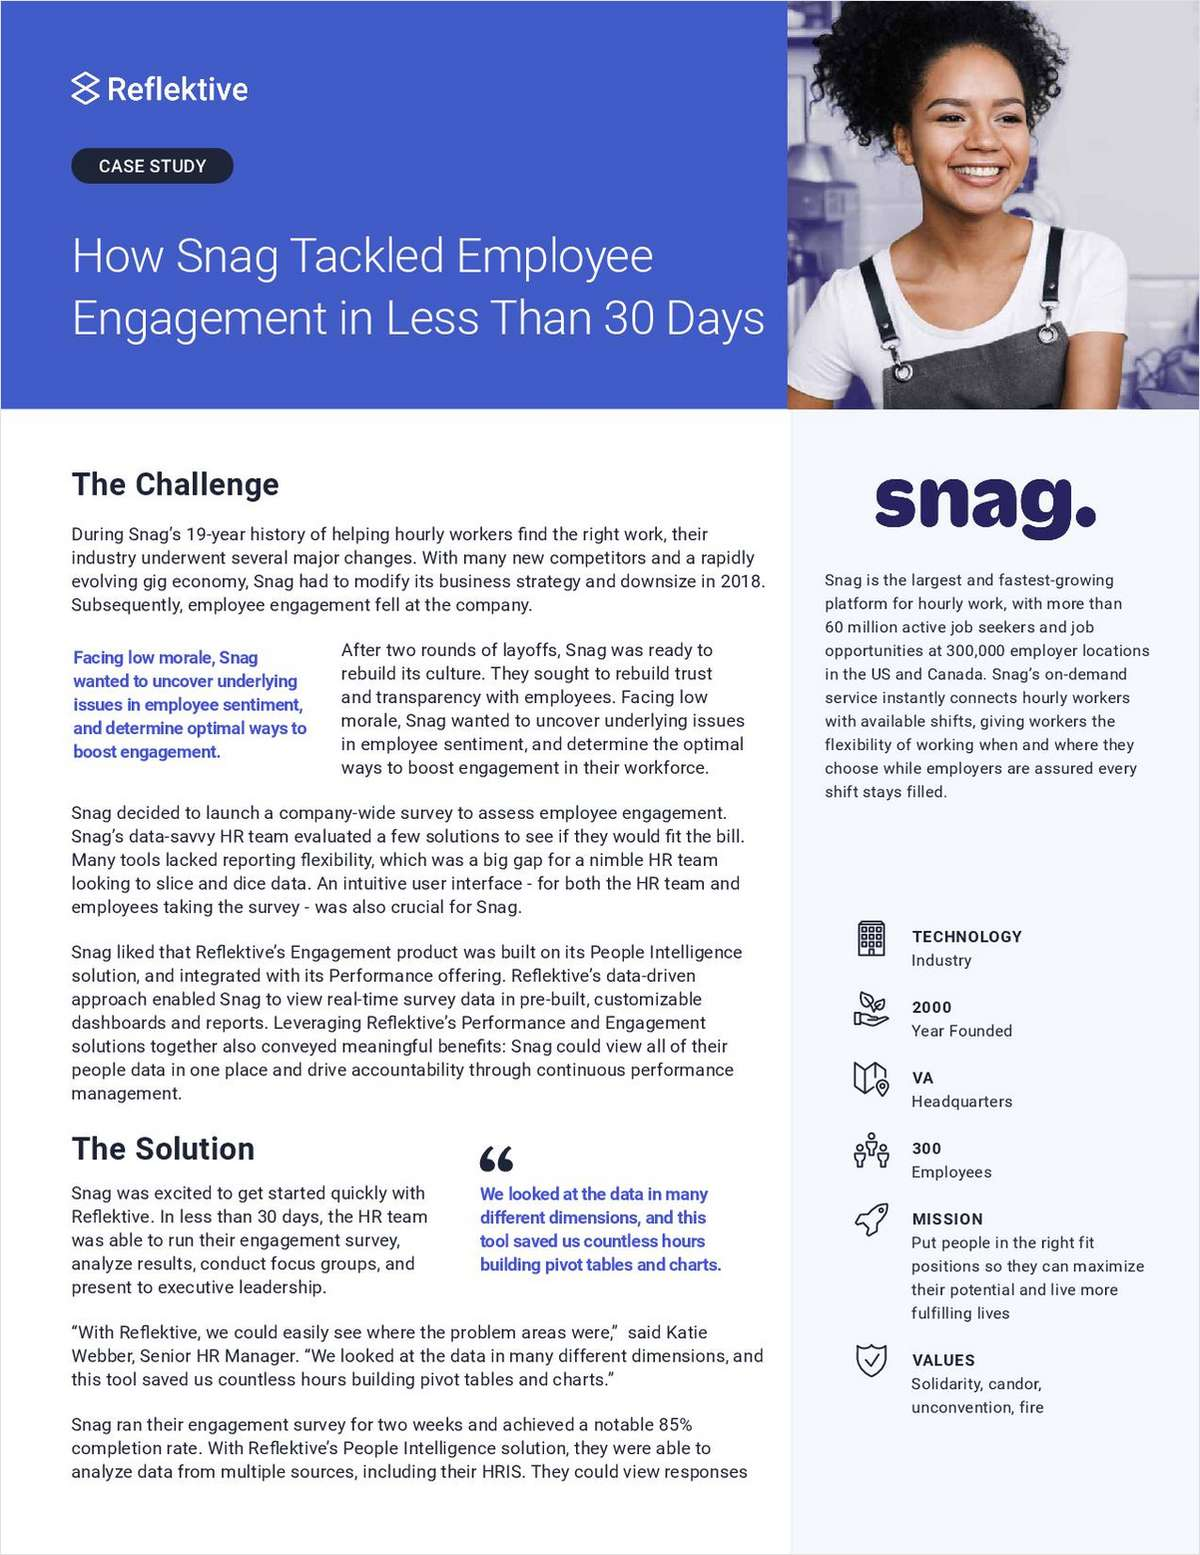 How Snag Tackled Employee Engagement in Less Than 30 Days